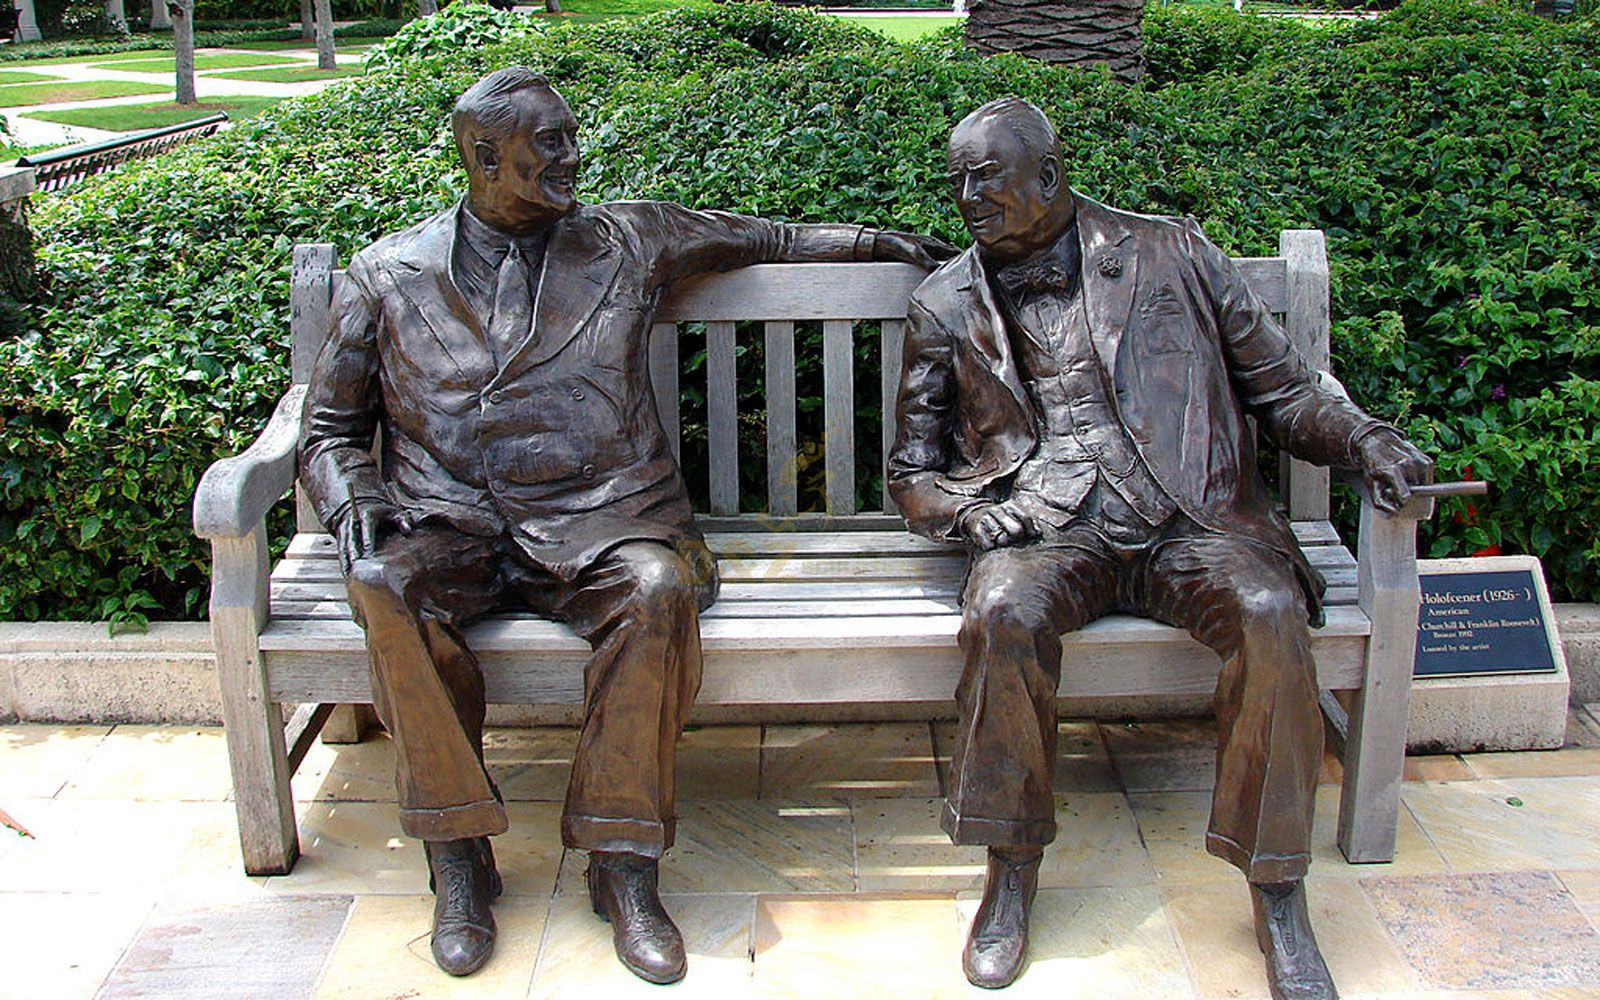 Life size city bronze statues two man siiting on the chair talking with each other